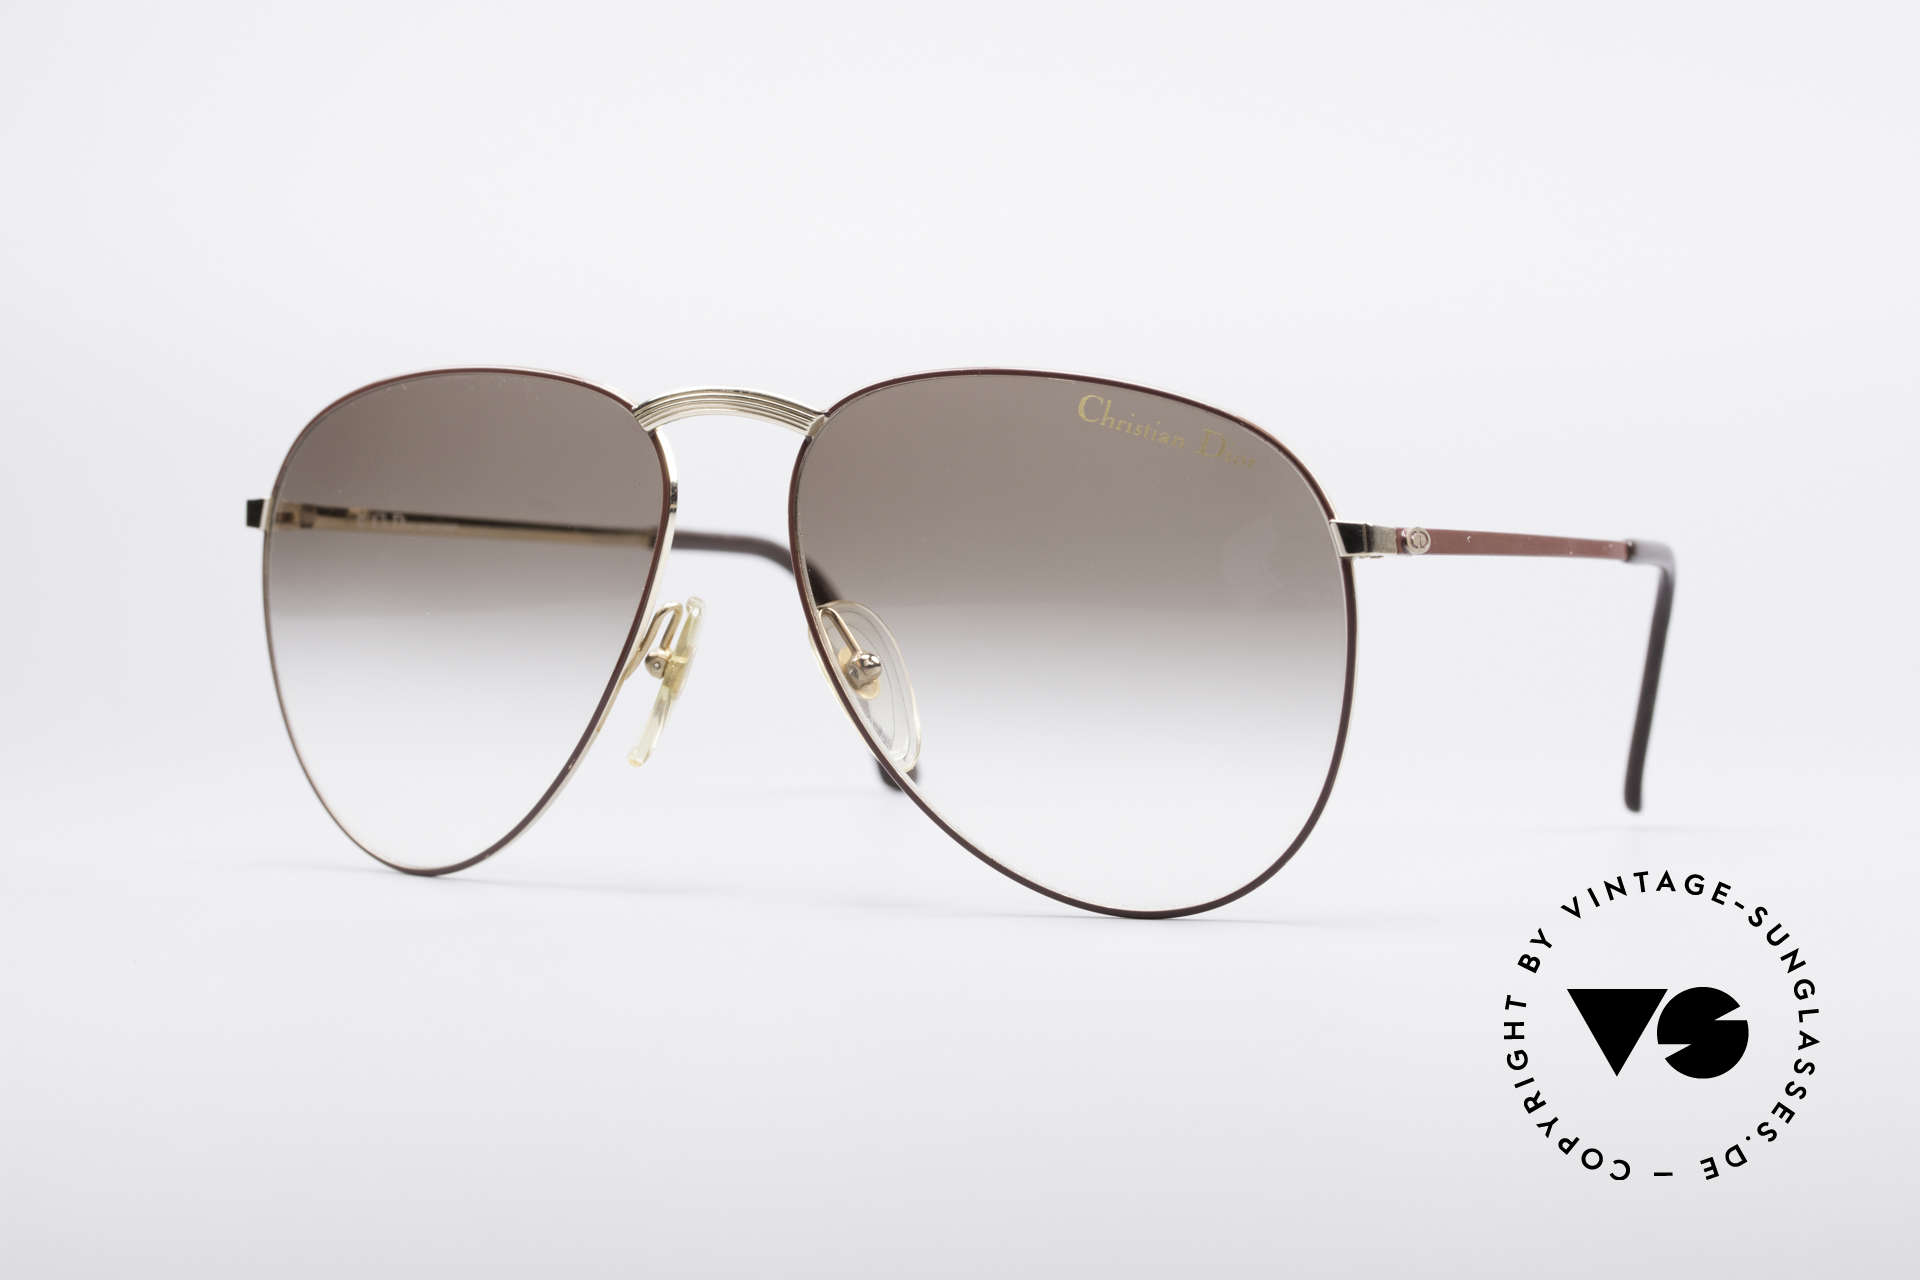 Christian Dior 2252 Rare 80's Shades, Christian Dior 'Monsieur' synonymous with elegance, Made for Men